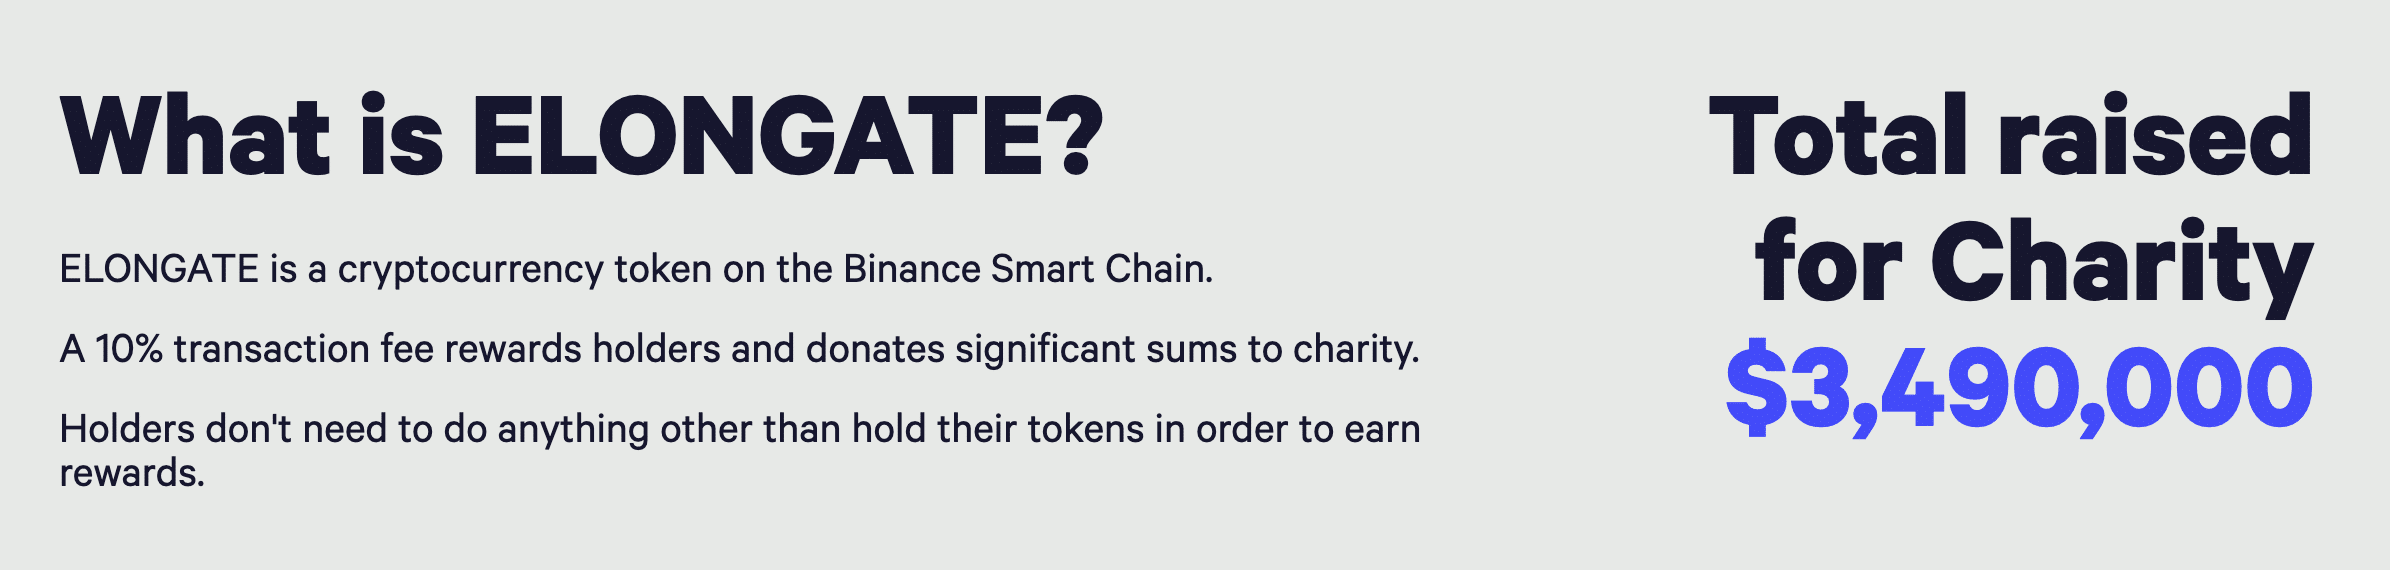 elongate cryptocurrency